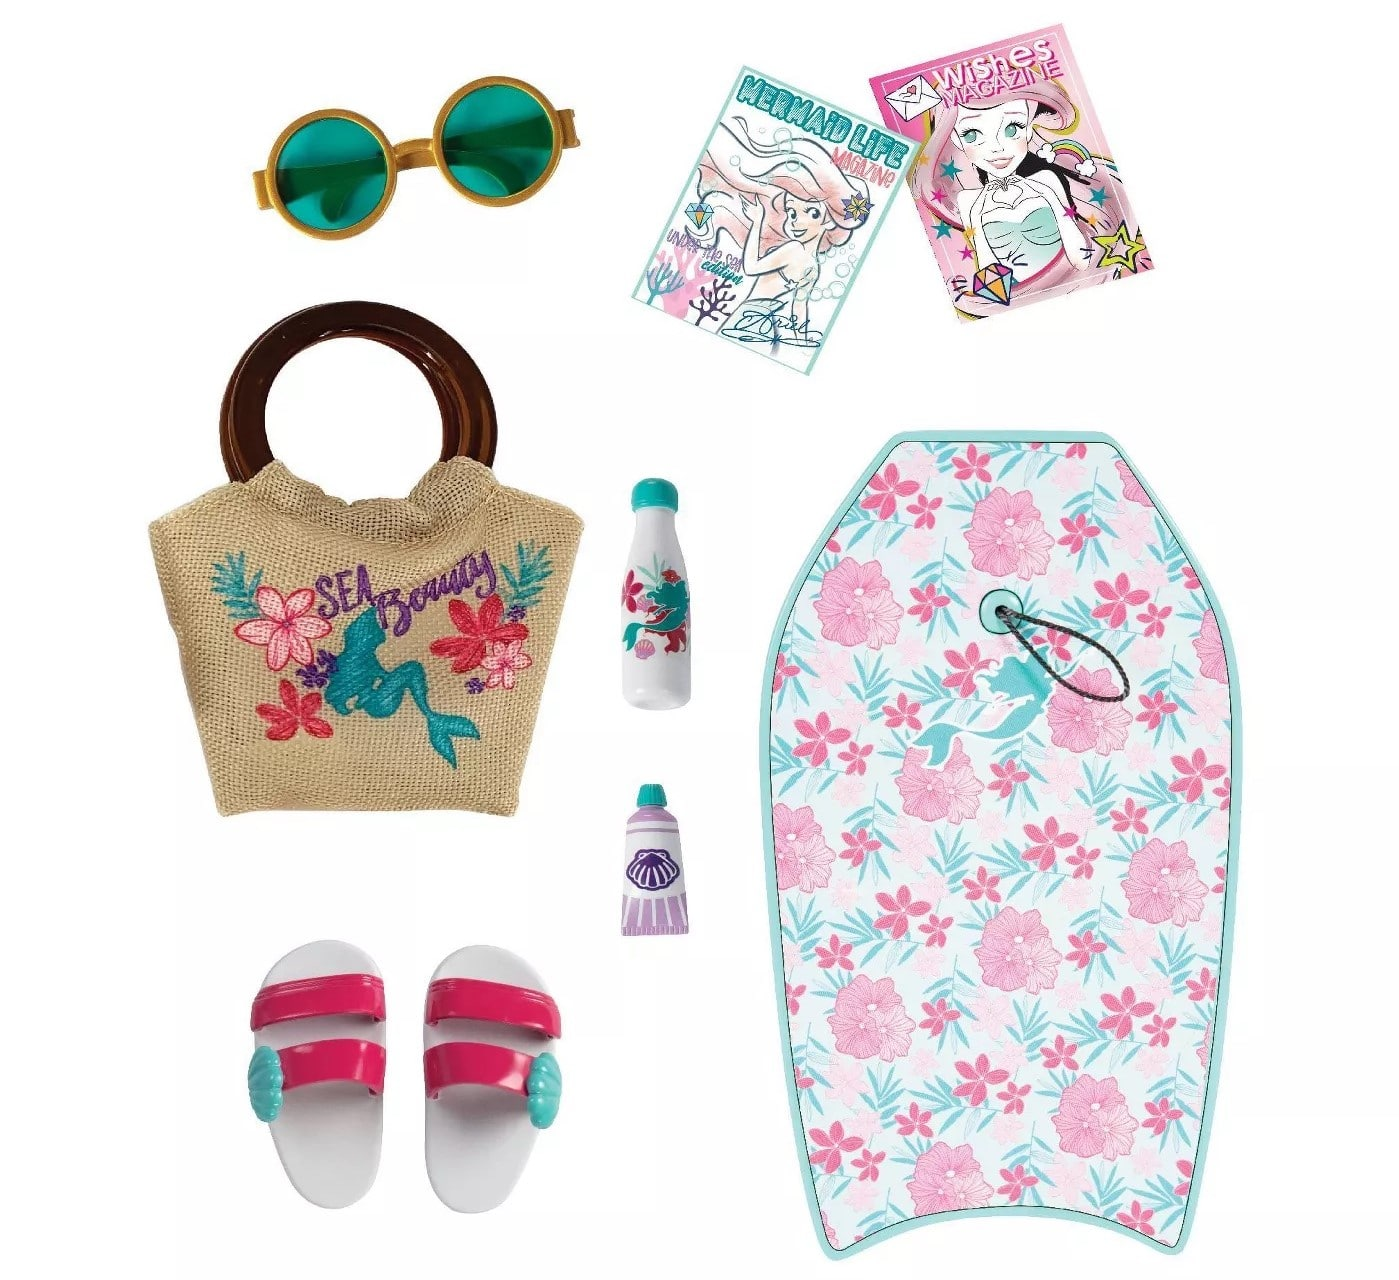 Disney ily 4EVER fashion doll collection is now available at Target 28